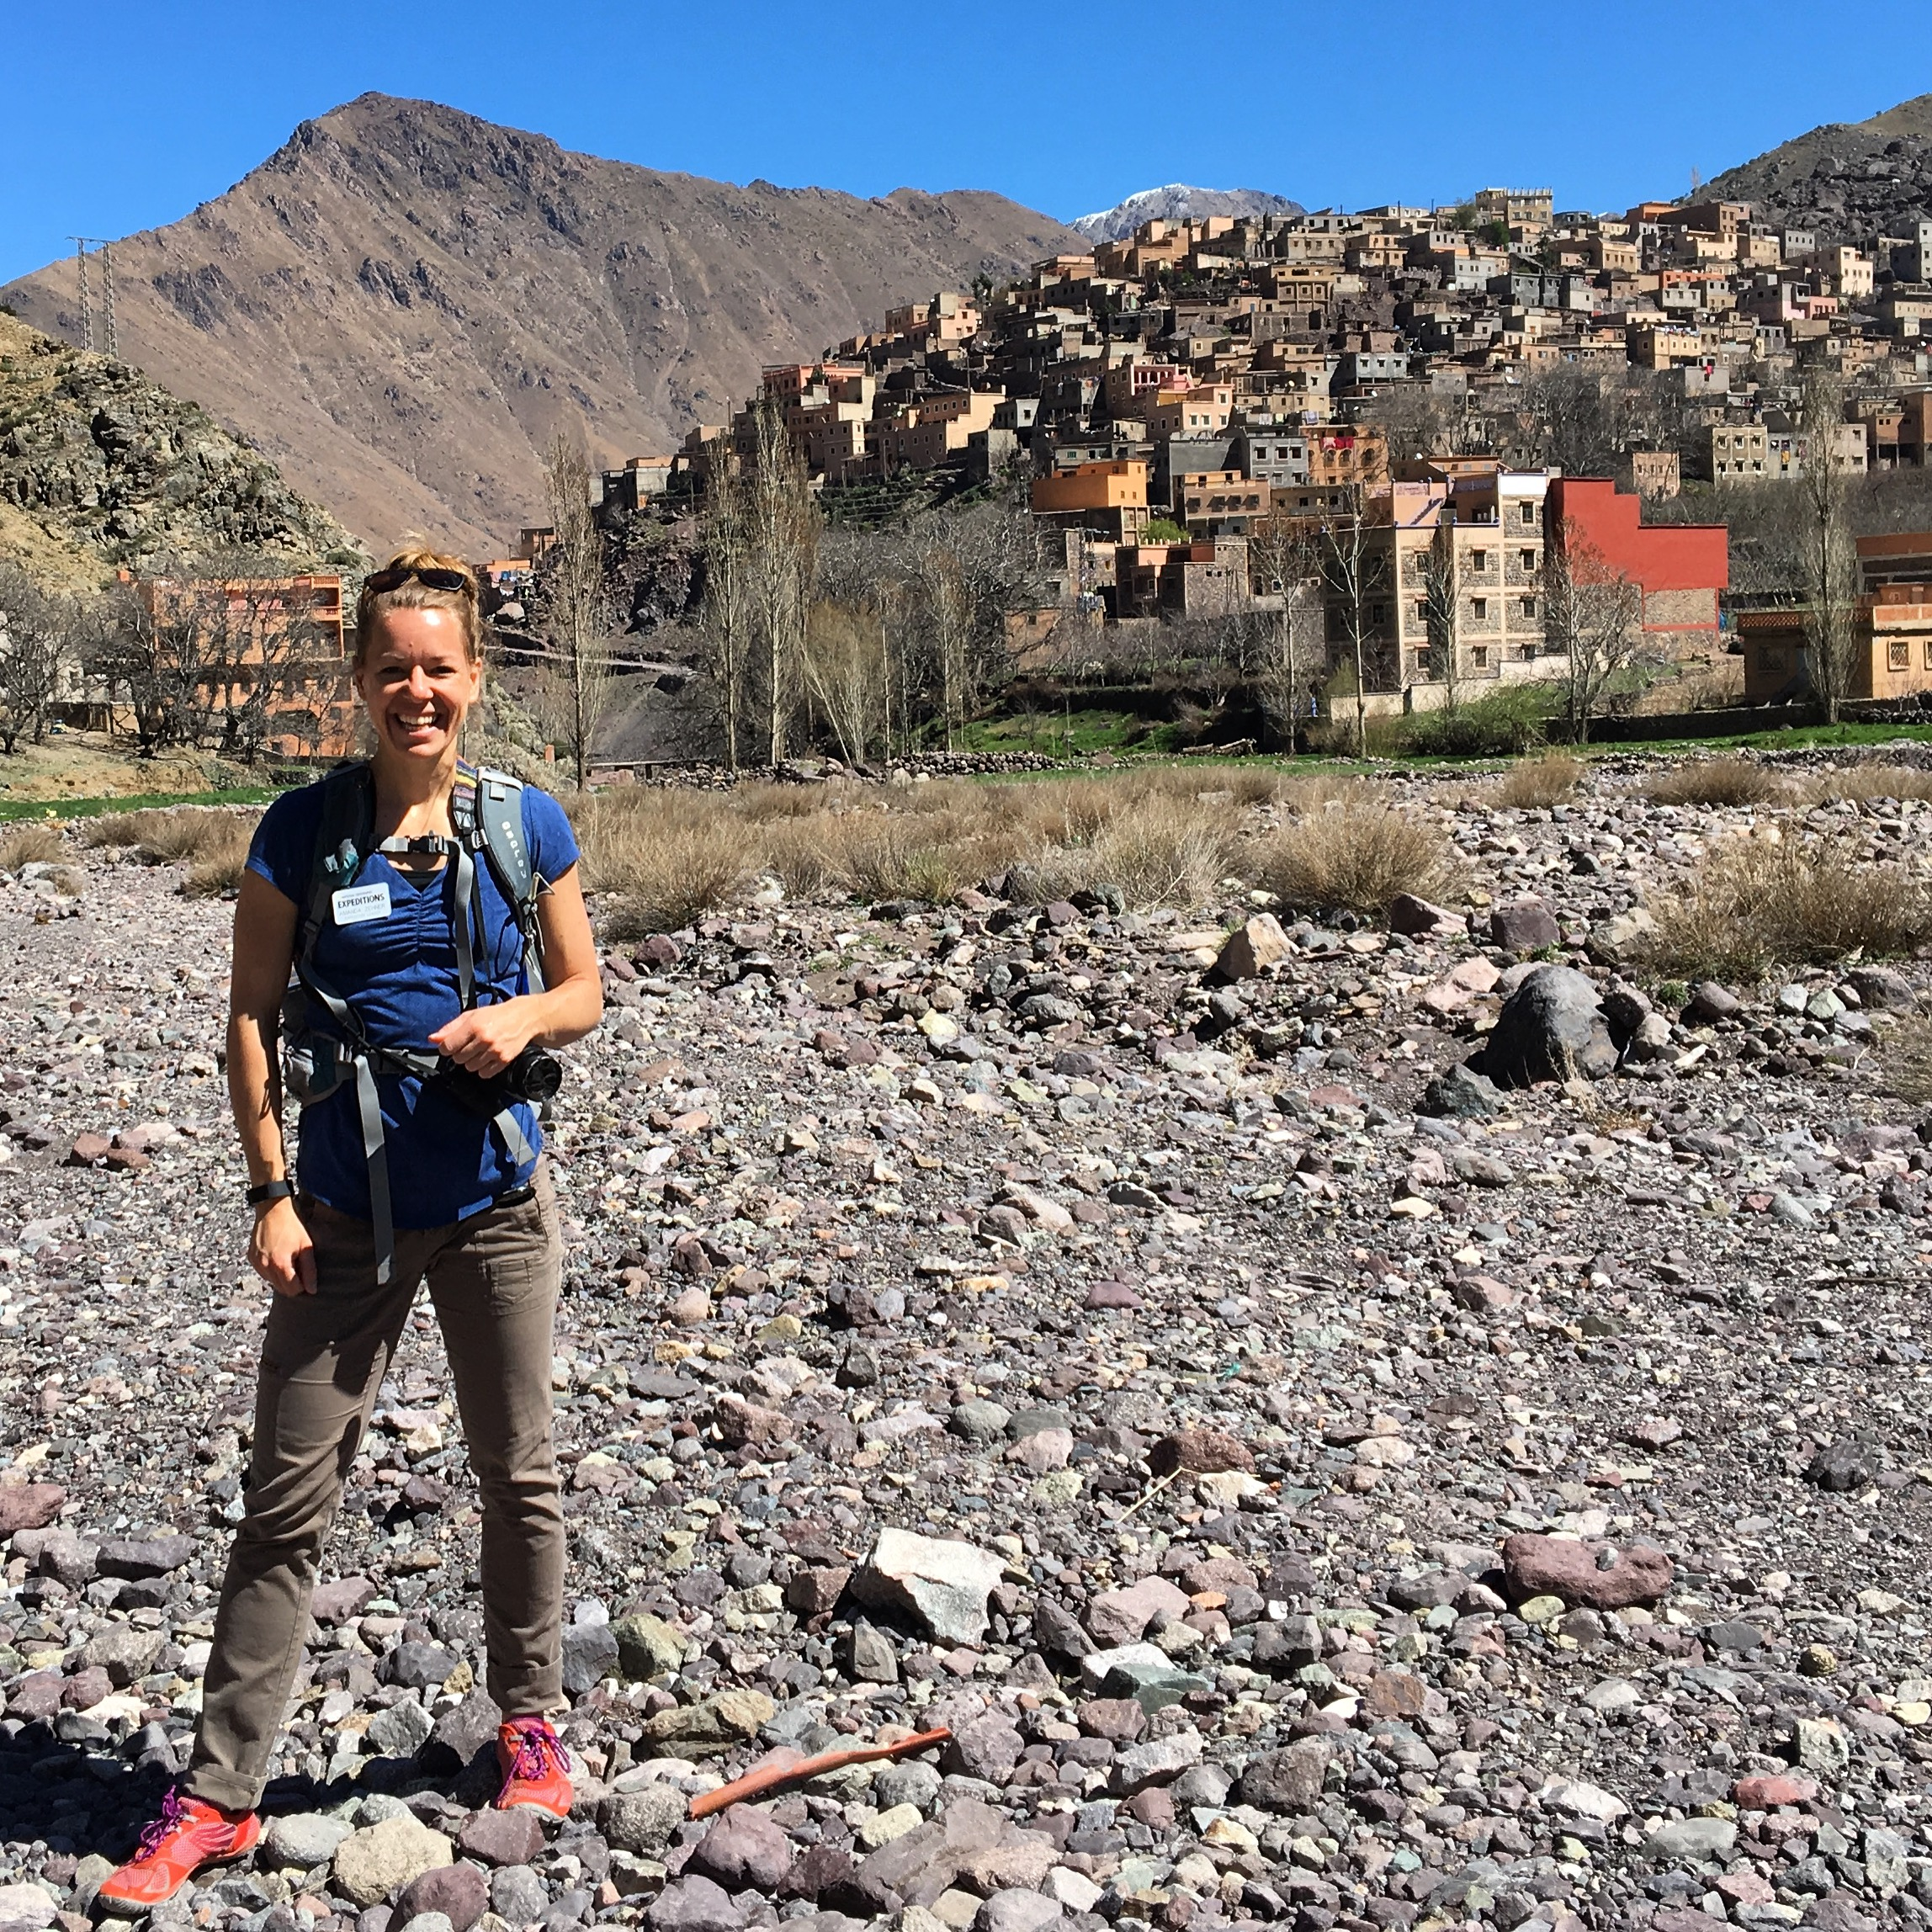 Living Threads Co. founder Amanda Zehner in the High Atlas, Morocco.